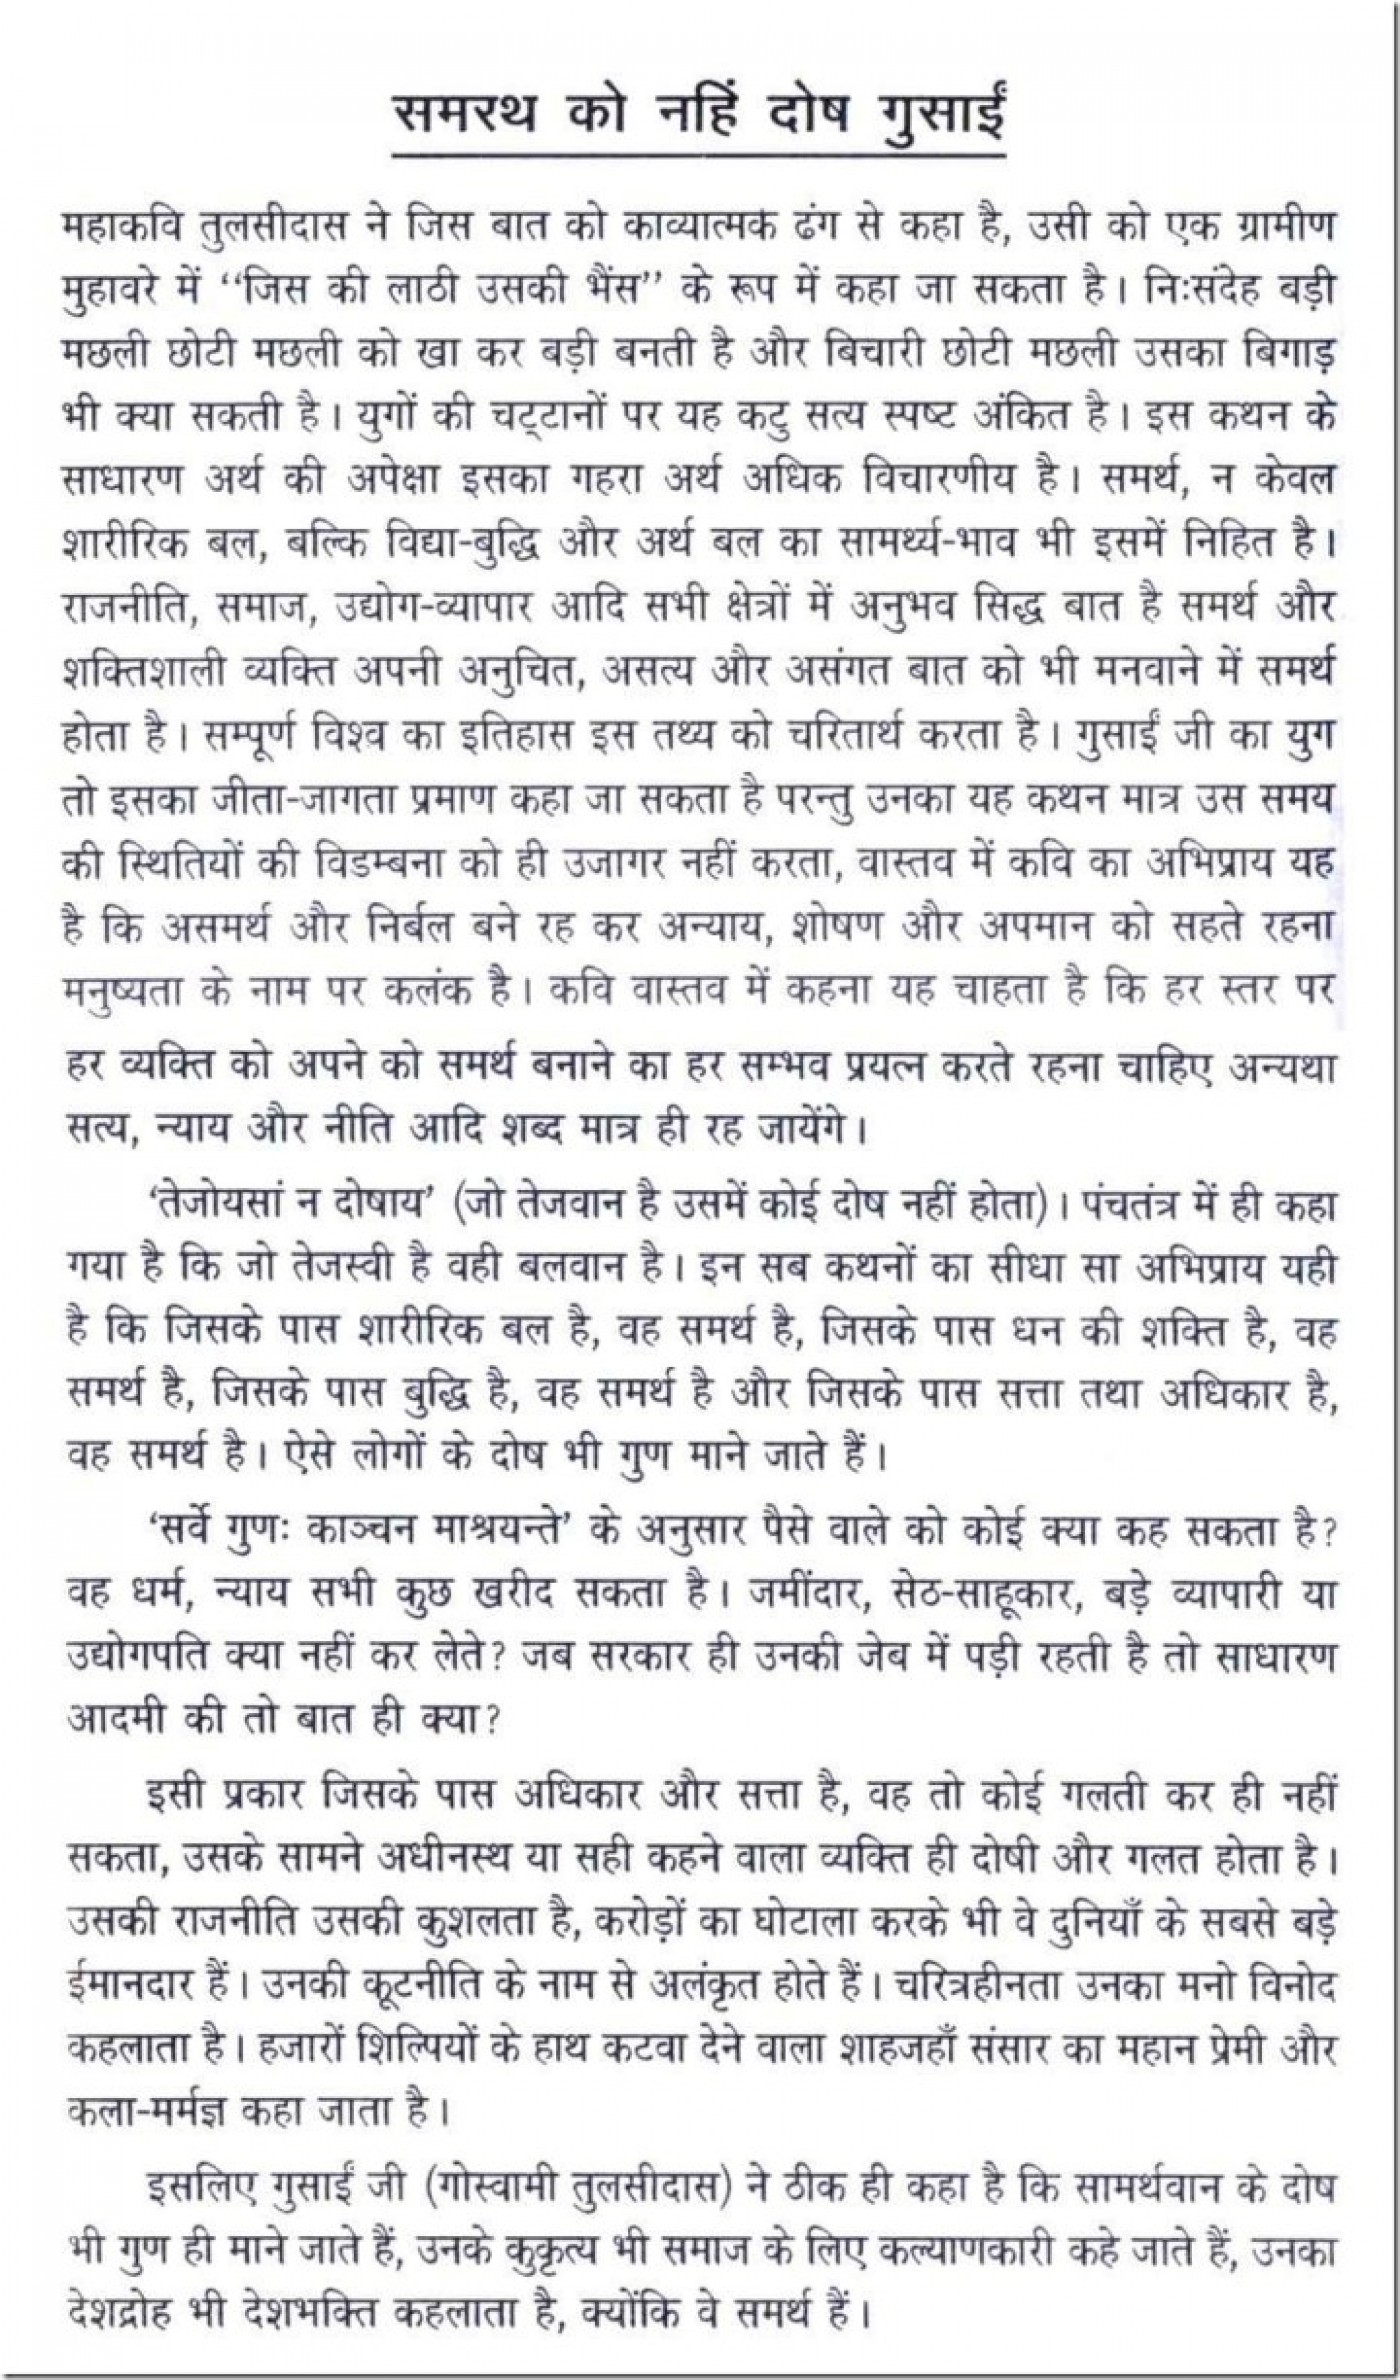 007 Good Habits Essay In Hindi Example Hh0055 Thumbresize7202c1224 Exceptional Healthy Eating Reading Is A Habit 1400